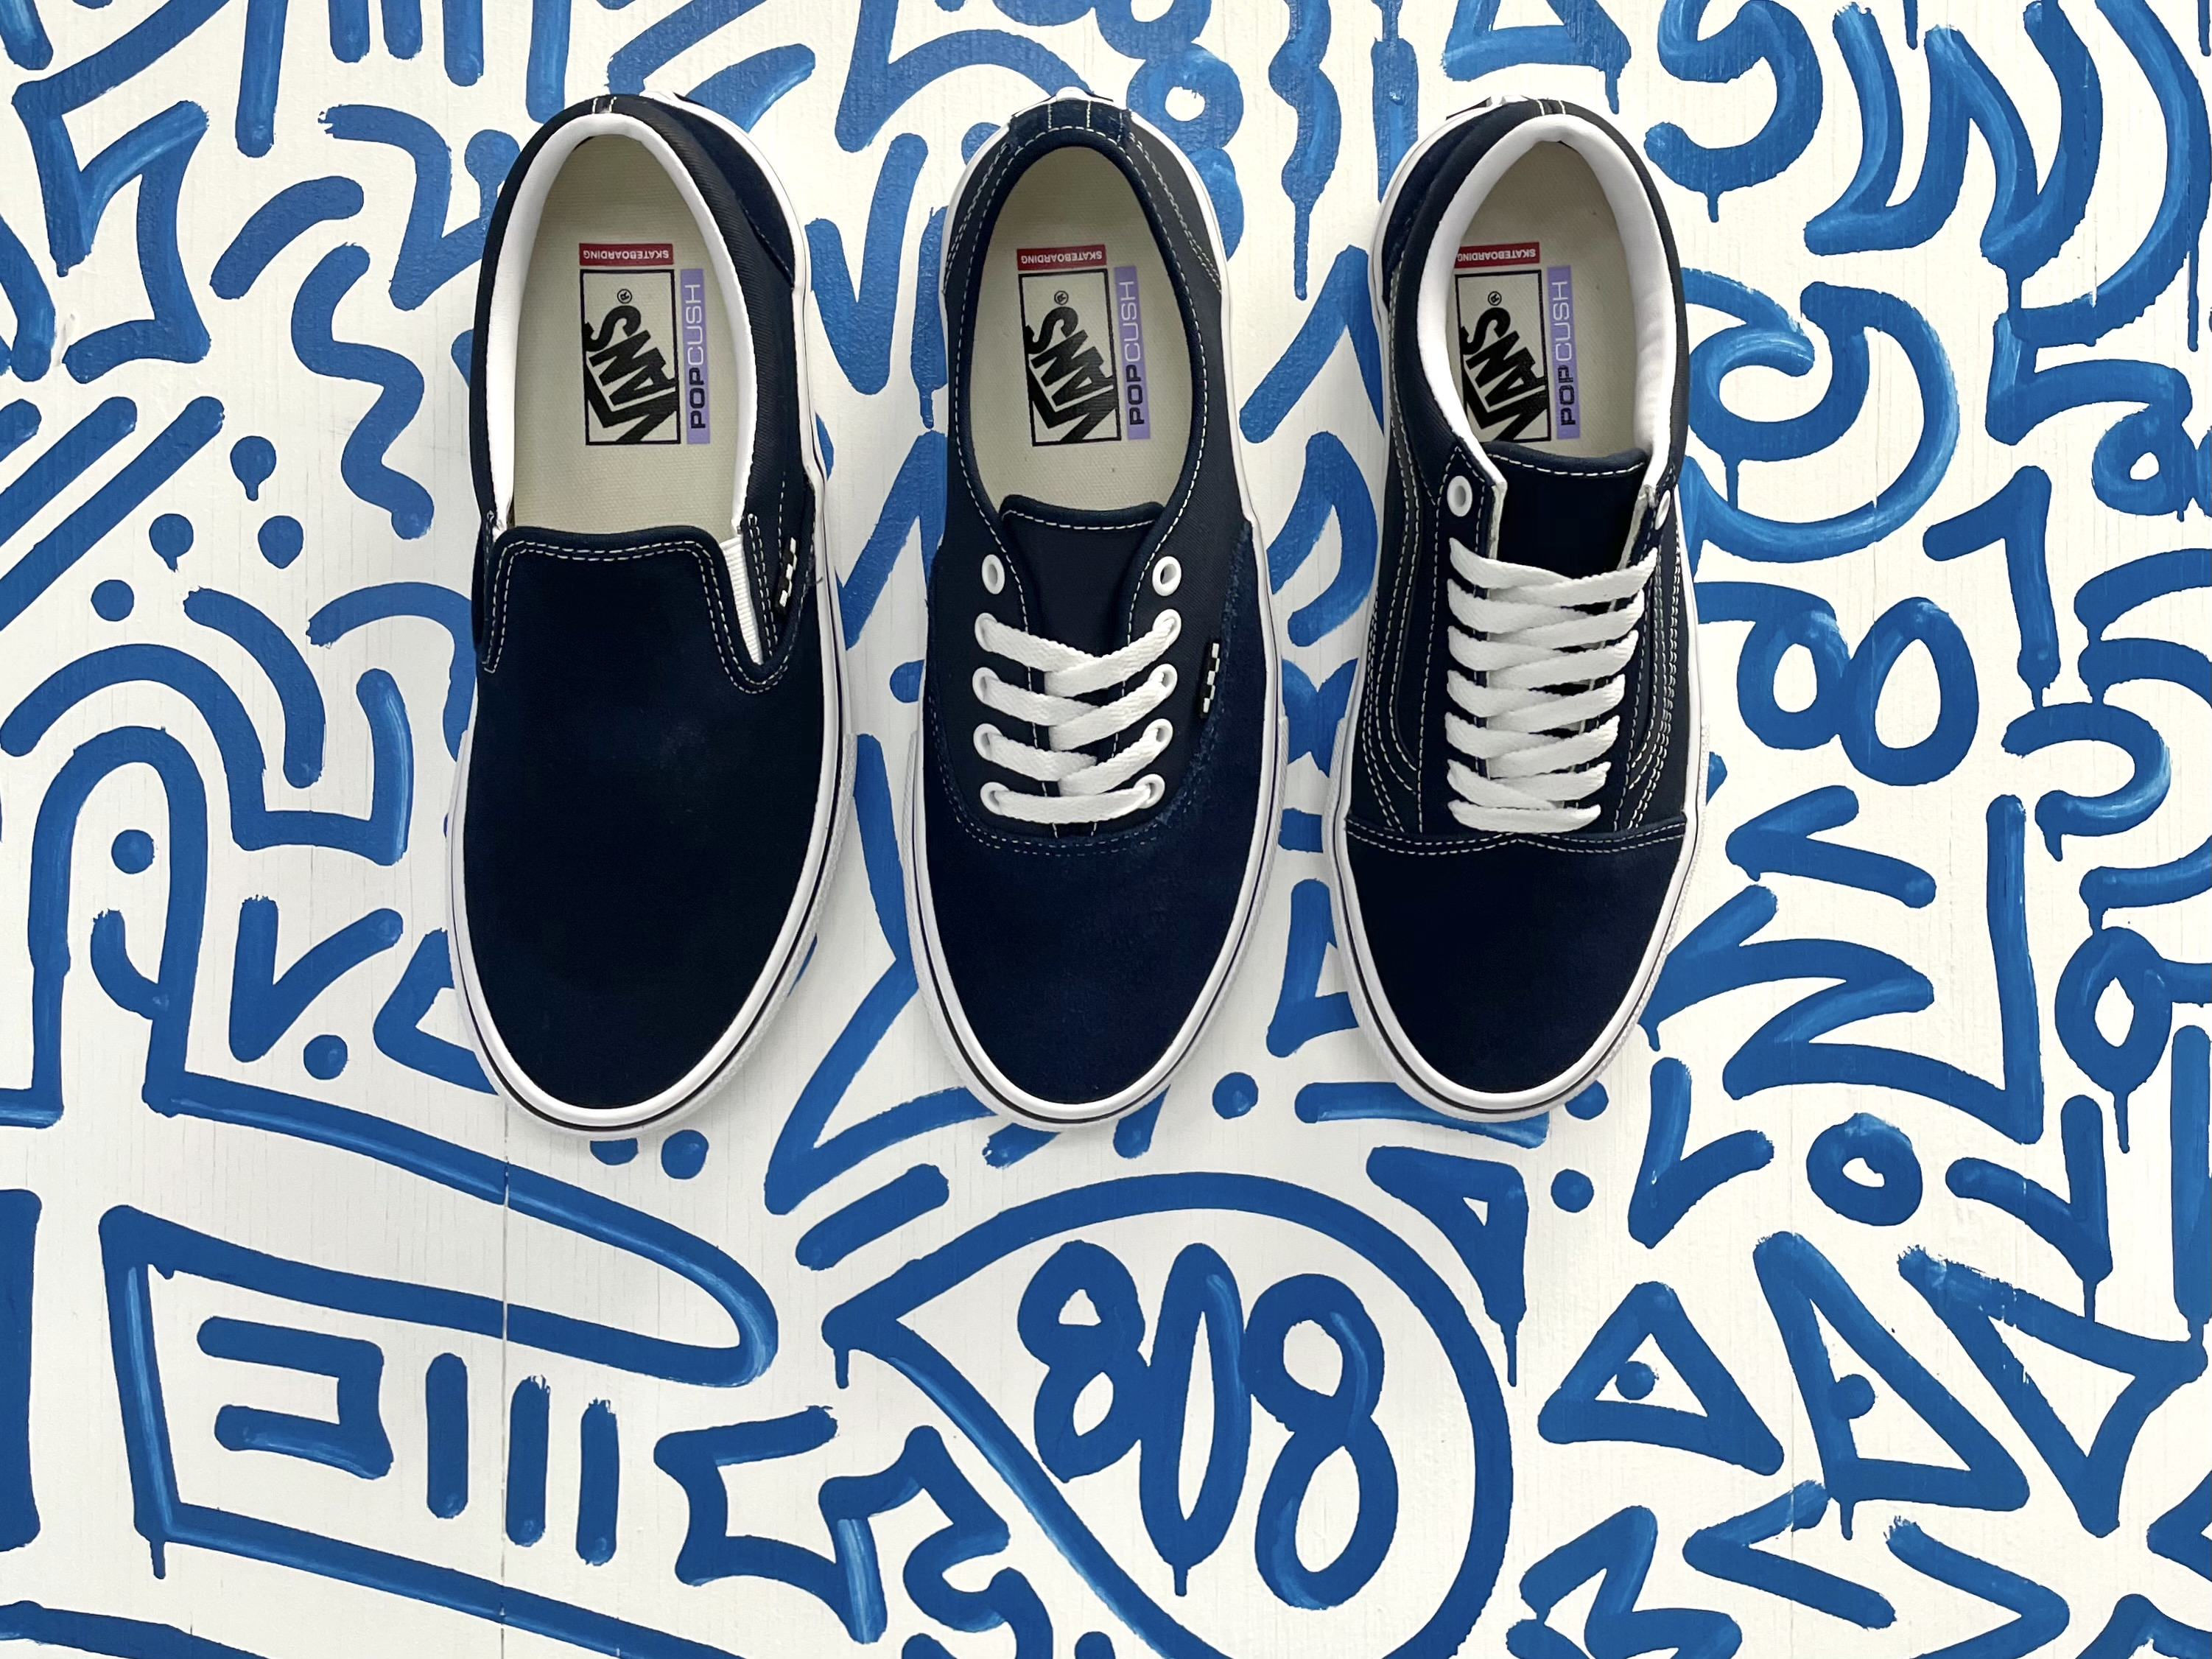 Vans Skate Classics Dress Blue Pack available in-store   online